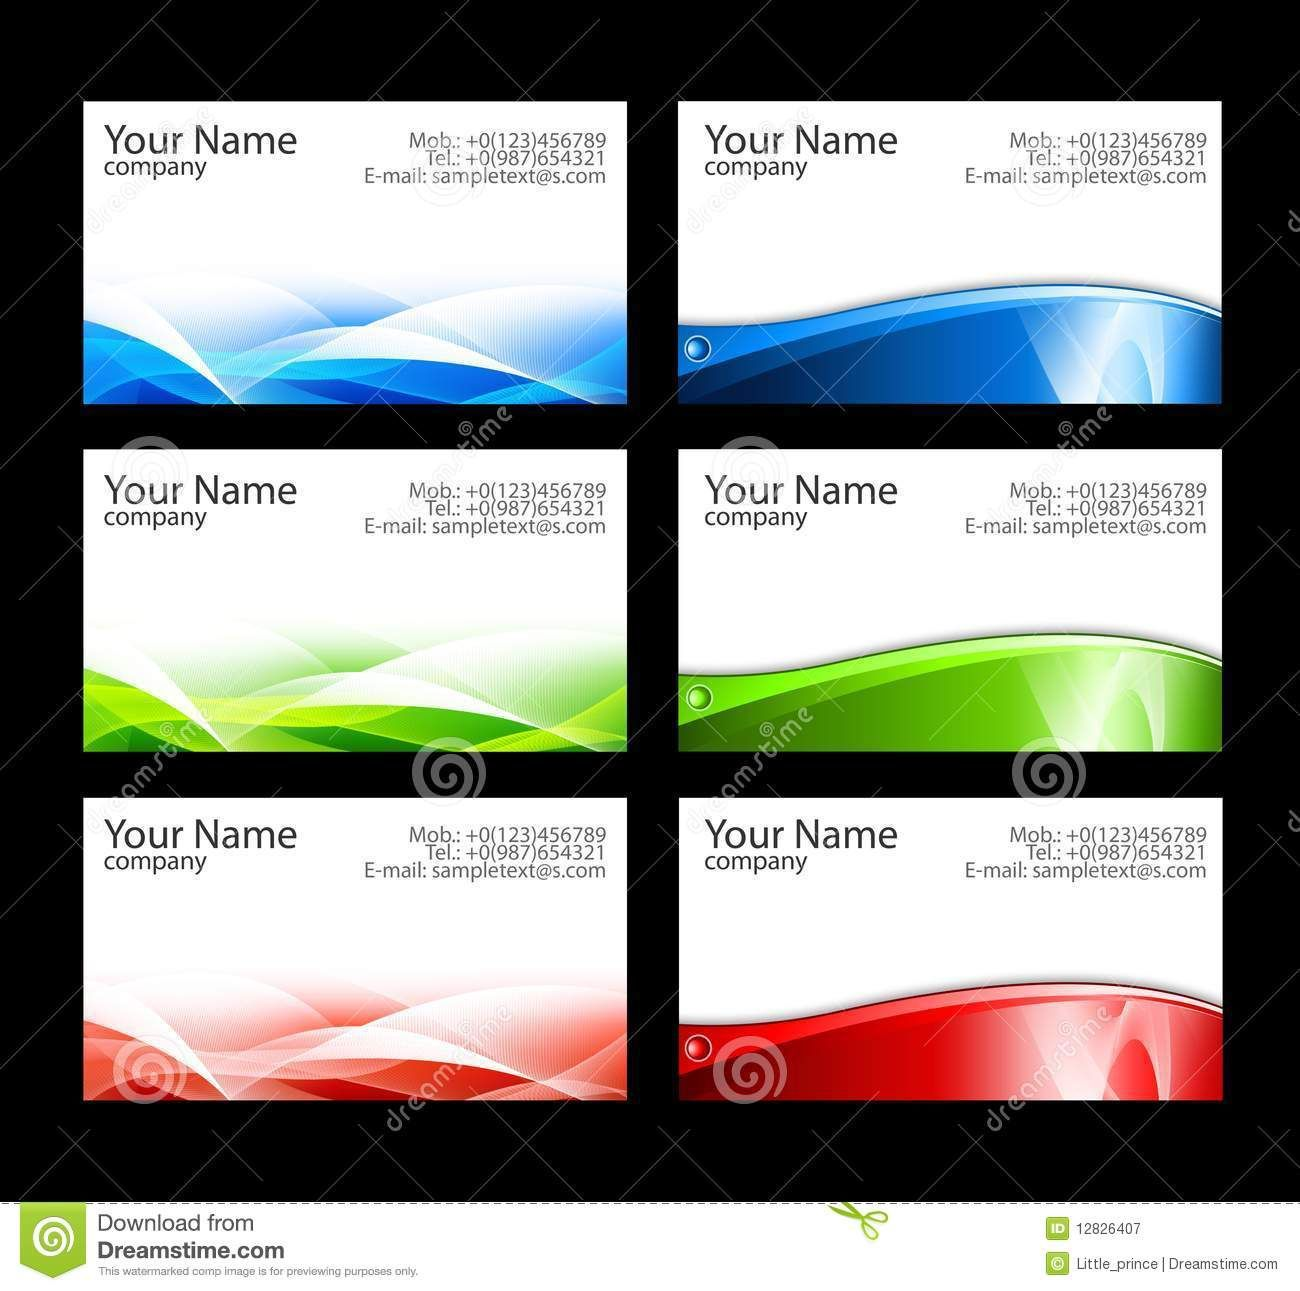 003 Impressive Busines Card Template Microsoft Word Photo  Avery 8 Per Page How To Make A Layout OnFull